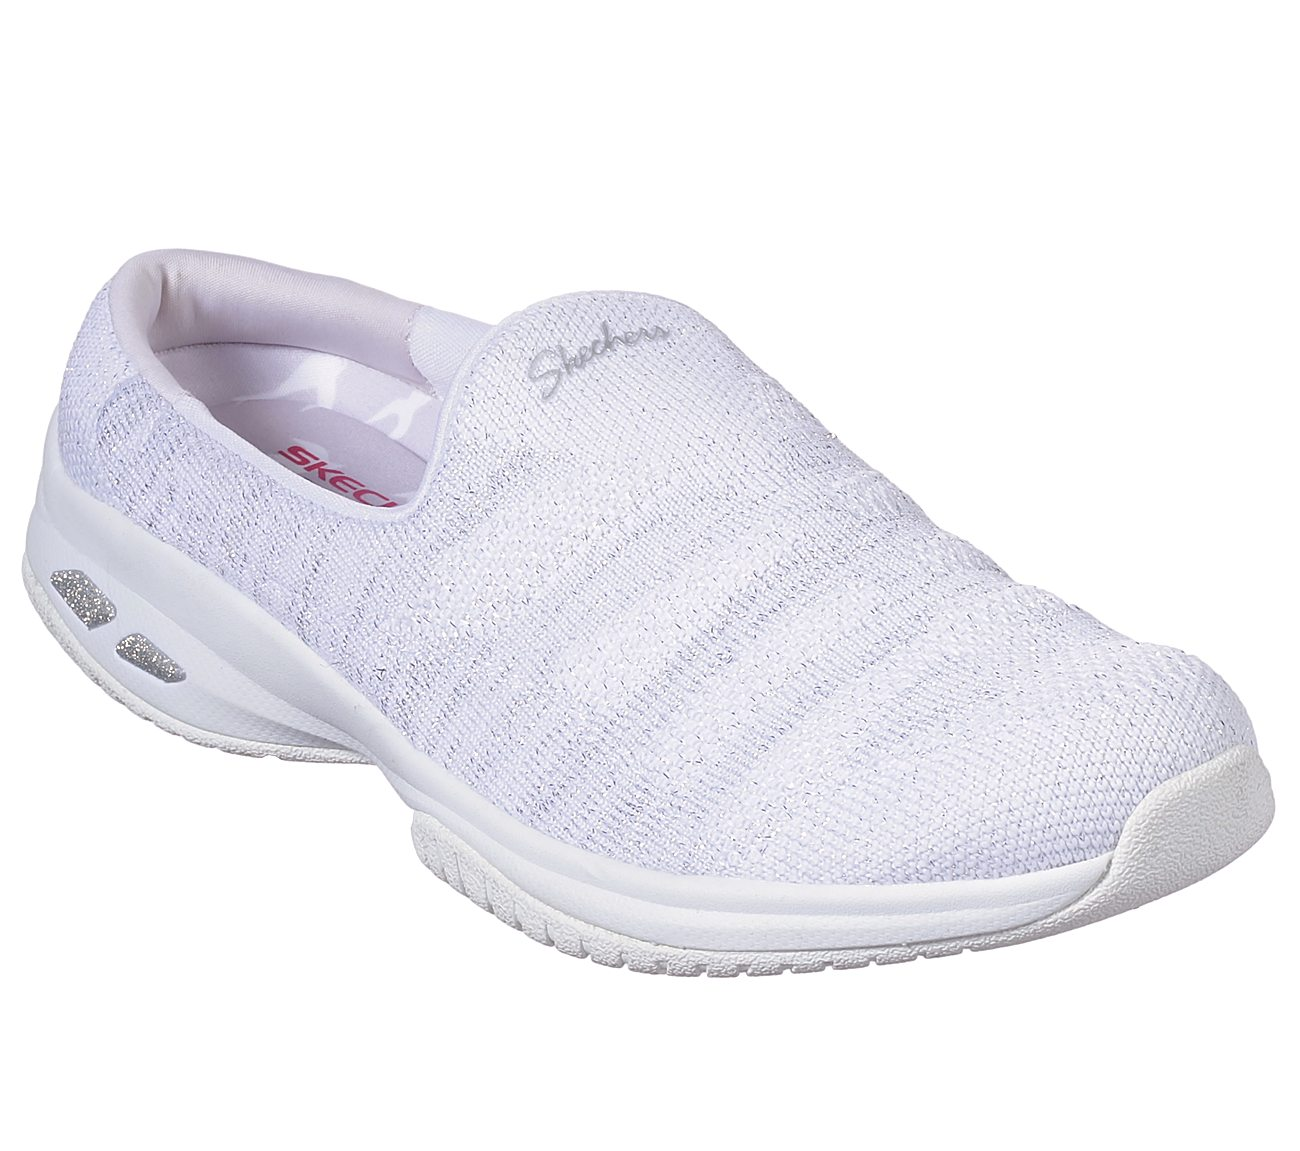 75b74dc1e973 Buy SKECHERS Relaxed Fit  Commute Time - Knitastic Modern Comfort ...